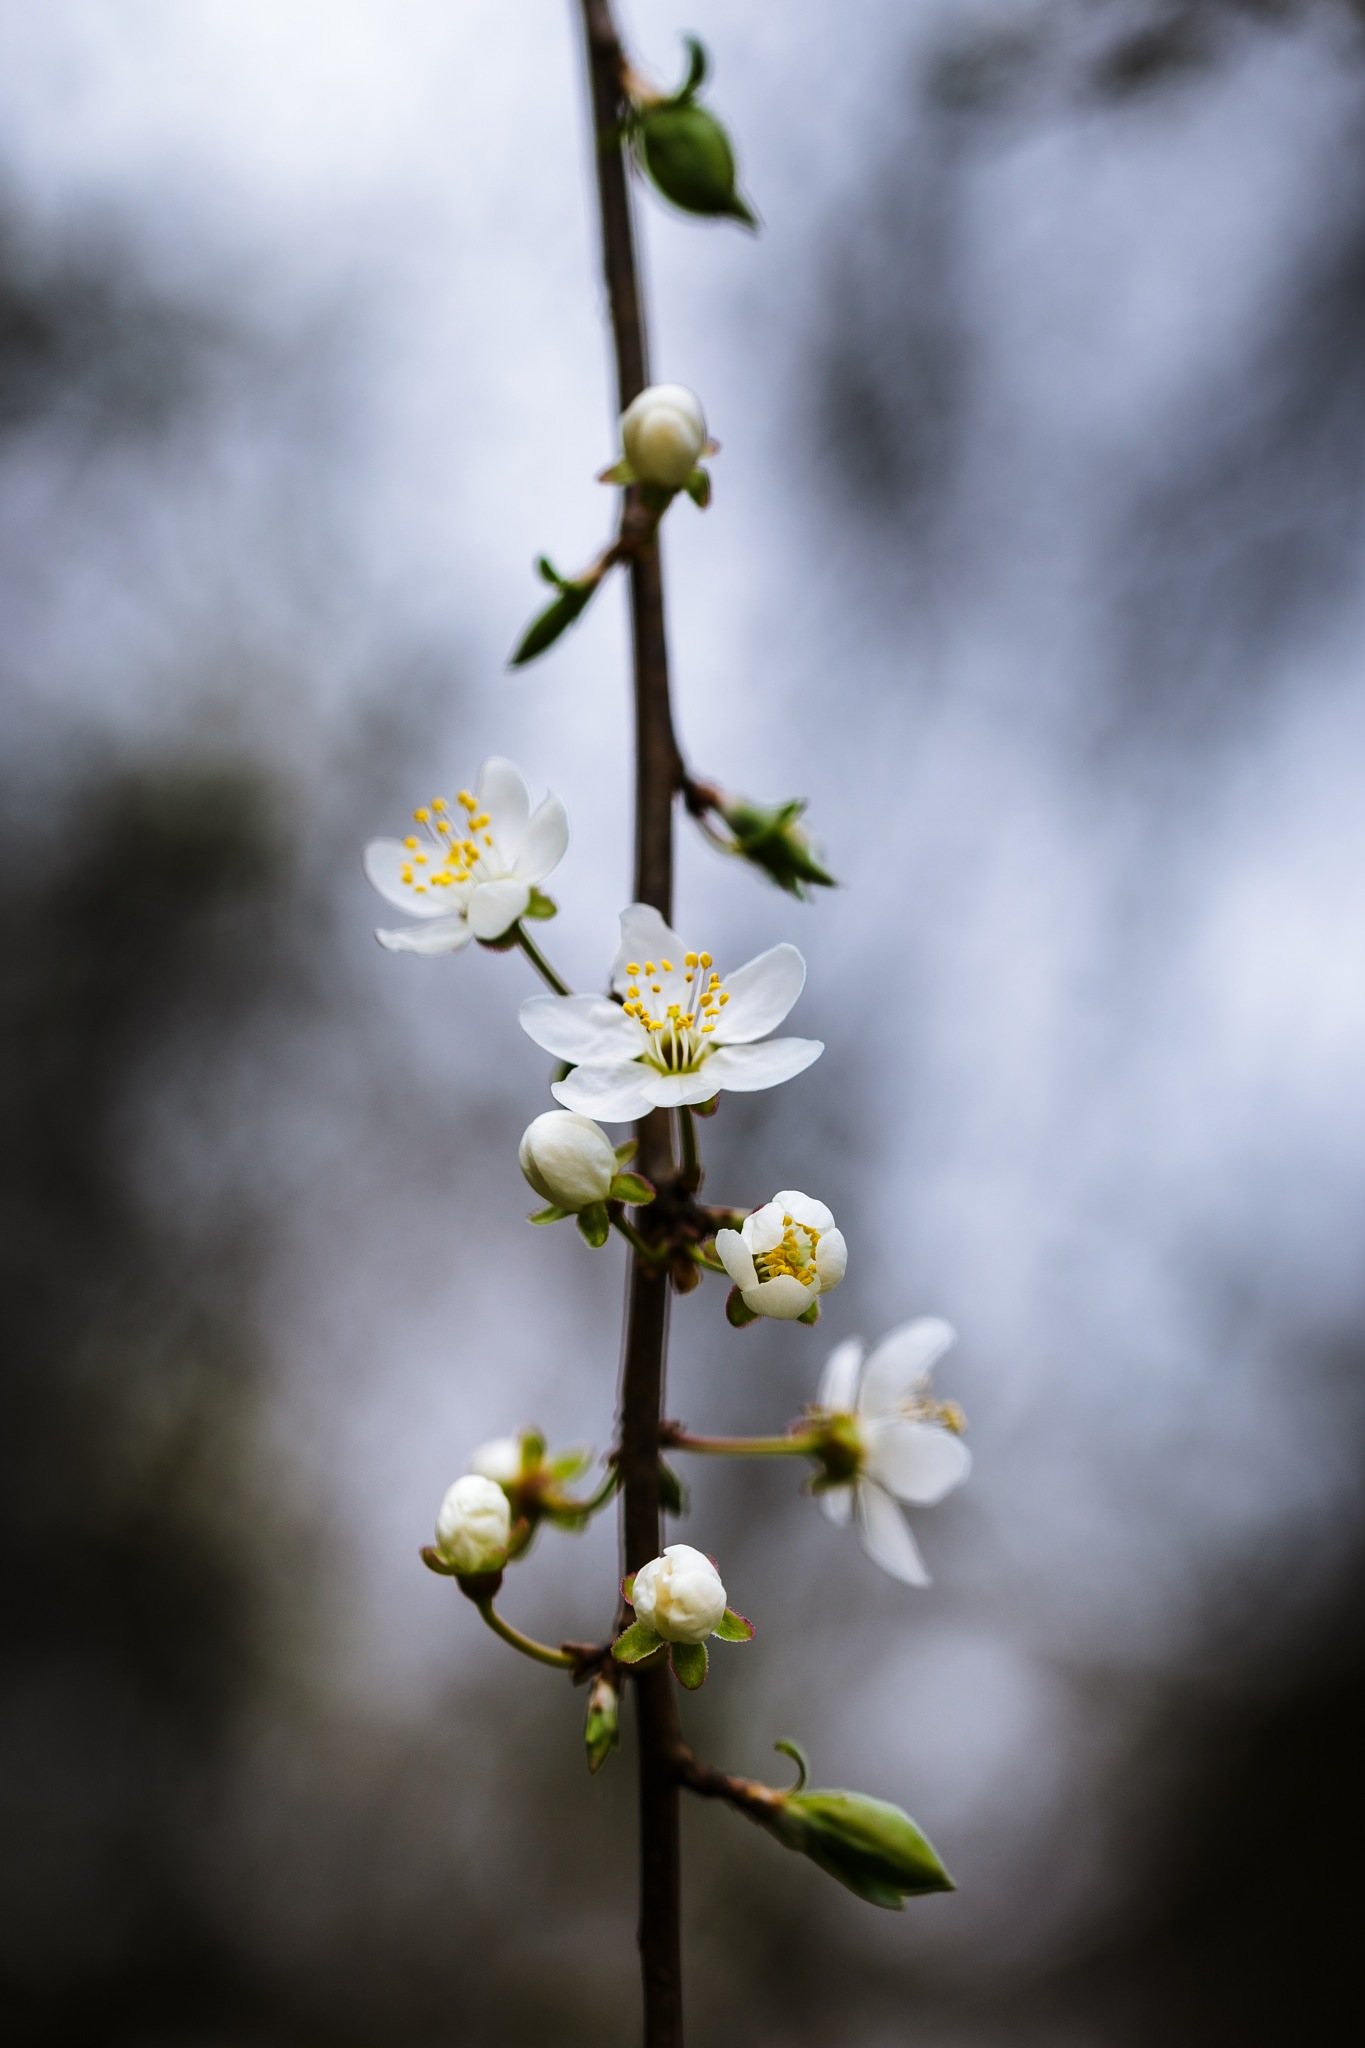 Prunus by Samuel Pettina